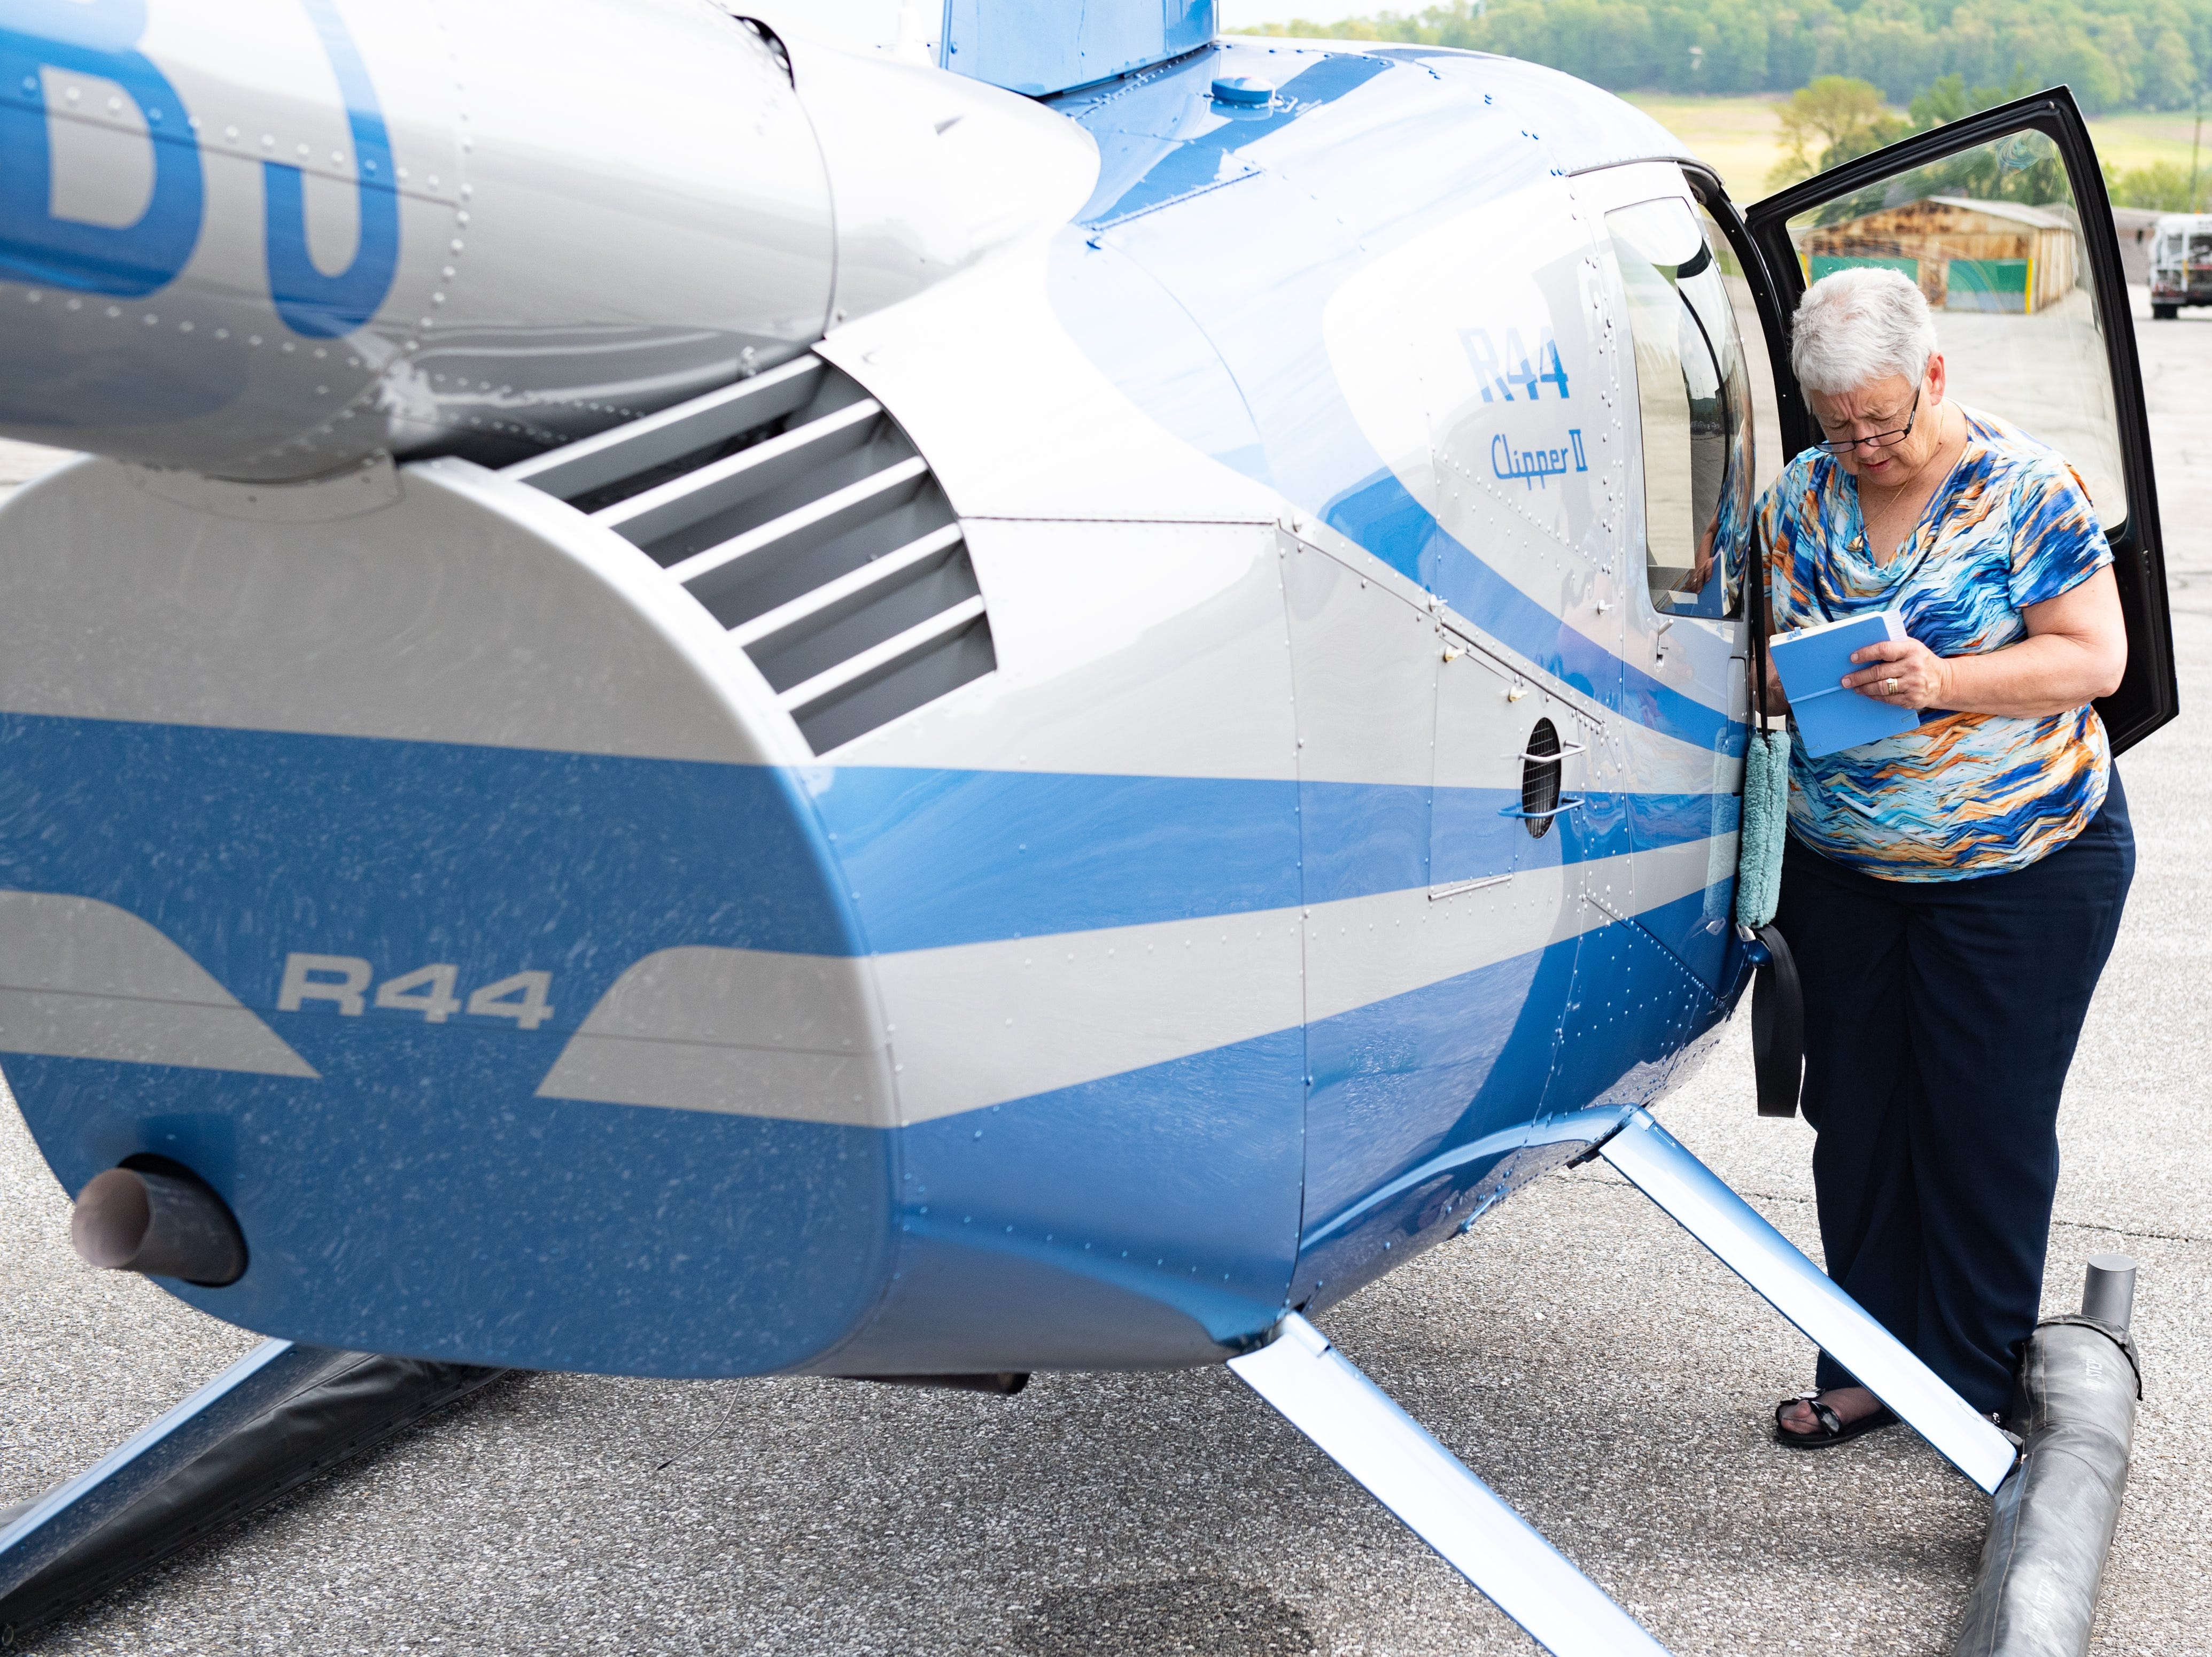 After every flight, Judith Redlawsk checks her helicopter thoroughly to make sure no damage was sustained in the air, May 2, 2019.